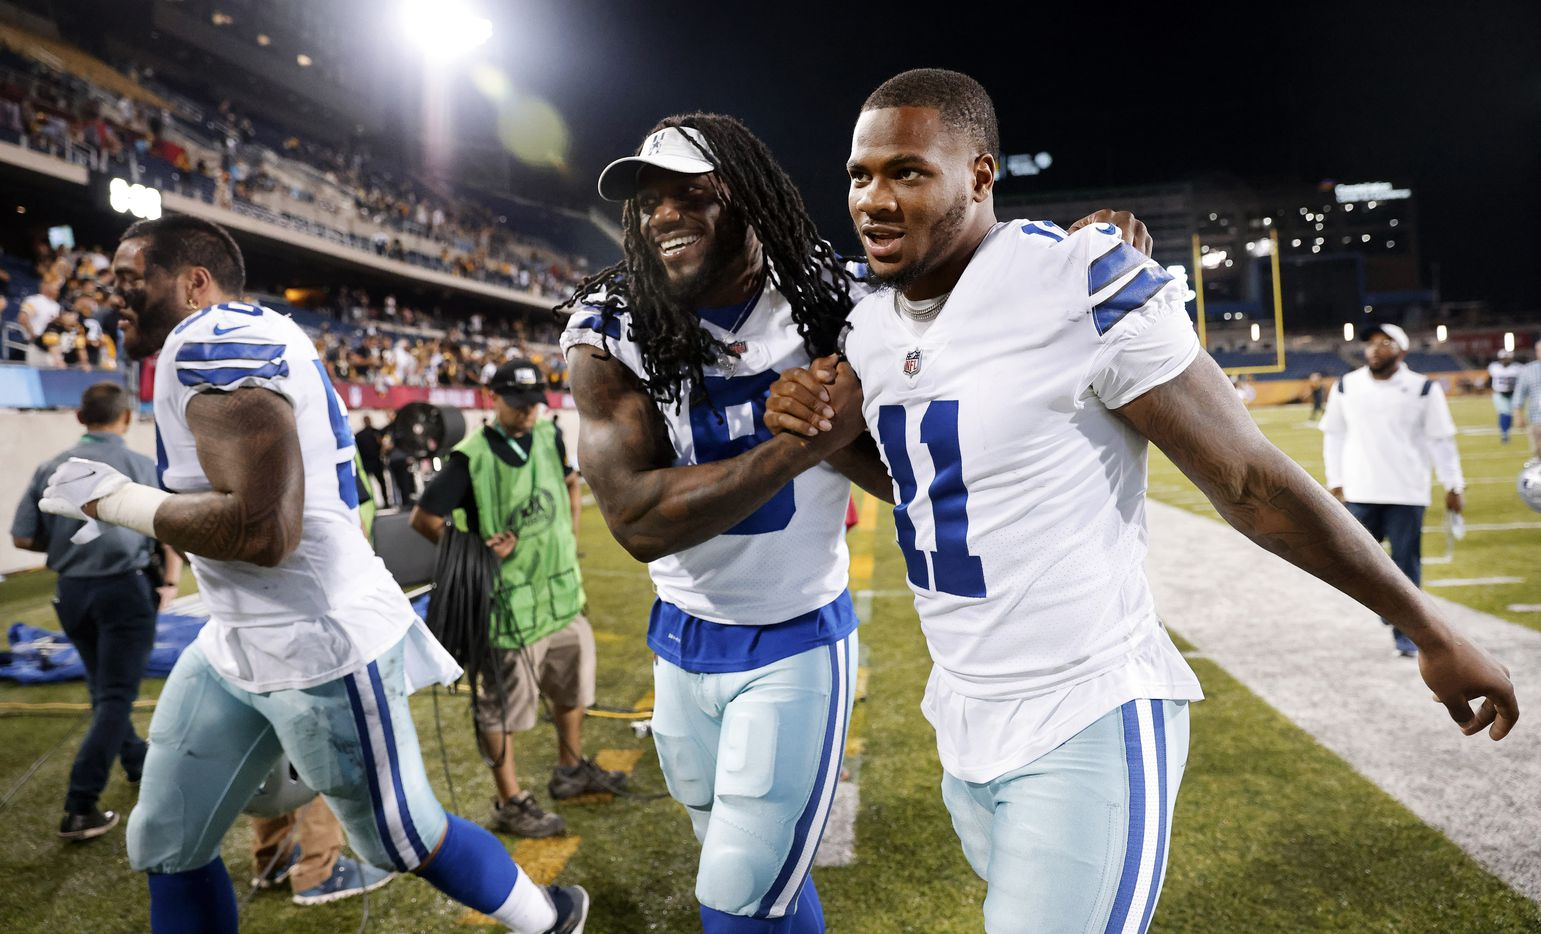 Dallas Cowboys linebacker Jaylon Smith (9) congratulates rookie linebacker Micah Parsons (11) after his first game. Parsons had a fumble recovery during their preseason game with the Pittsburgh Steelers at Tom Benson Hall of Fame Stadium in Canton, Ohio, Thursday, August 5, 2021. (Tom Fox/The Dallas Morning News)